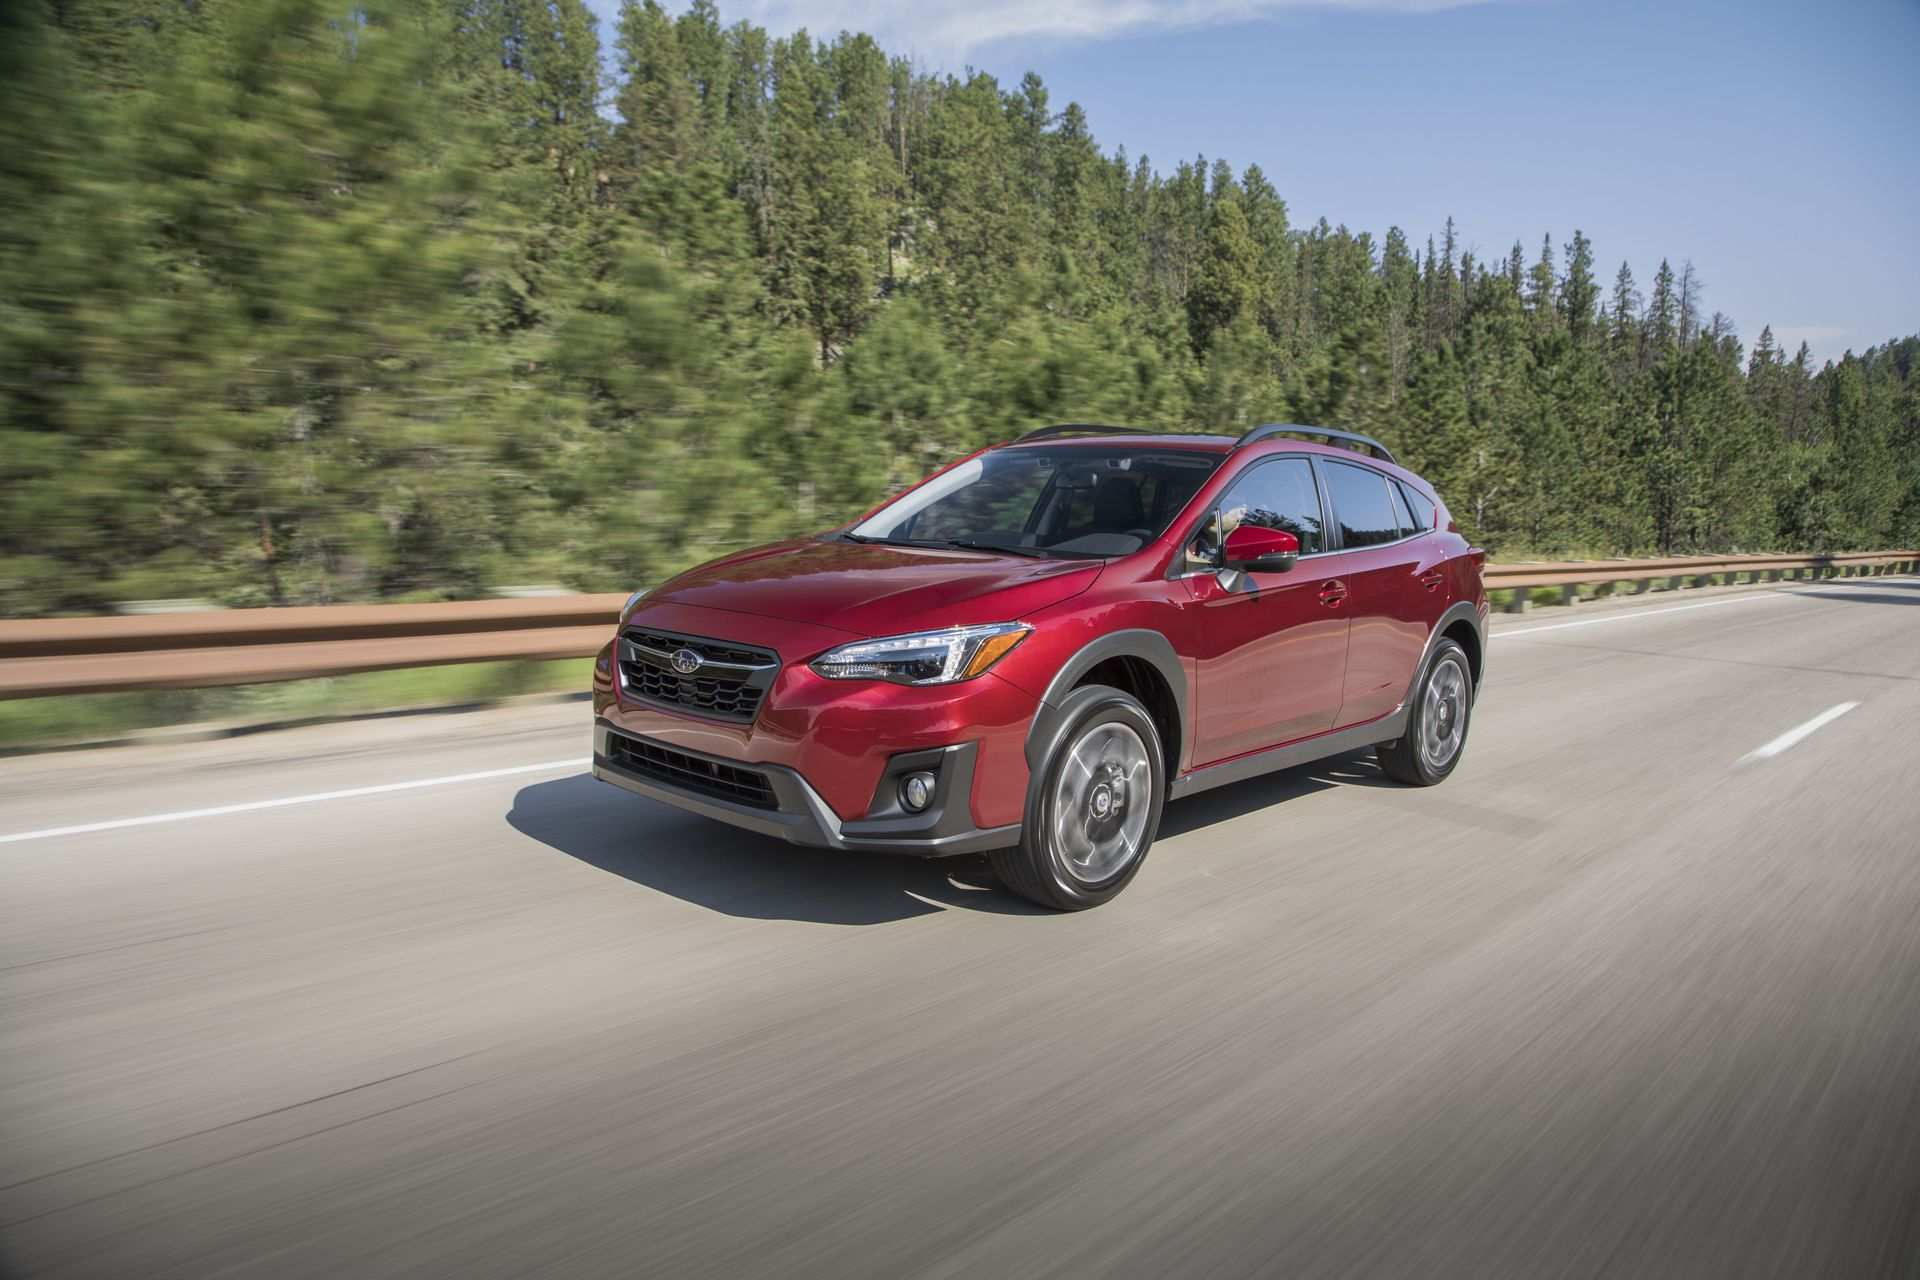 46 Gallery of 2019 Subaru Electric Ratings with 2019 Subaru Electric